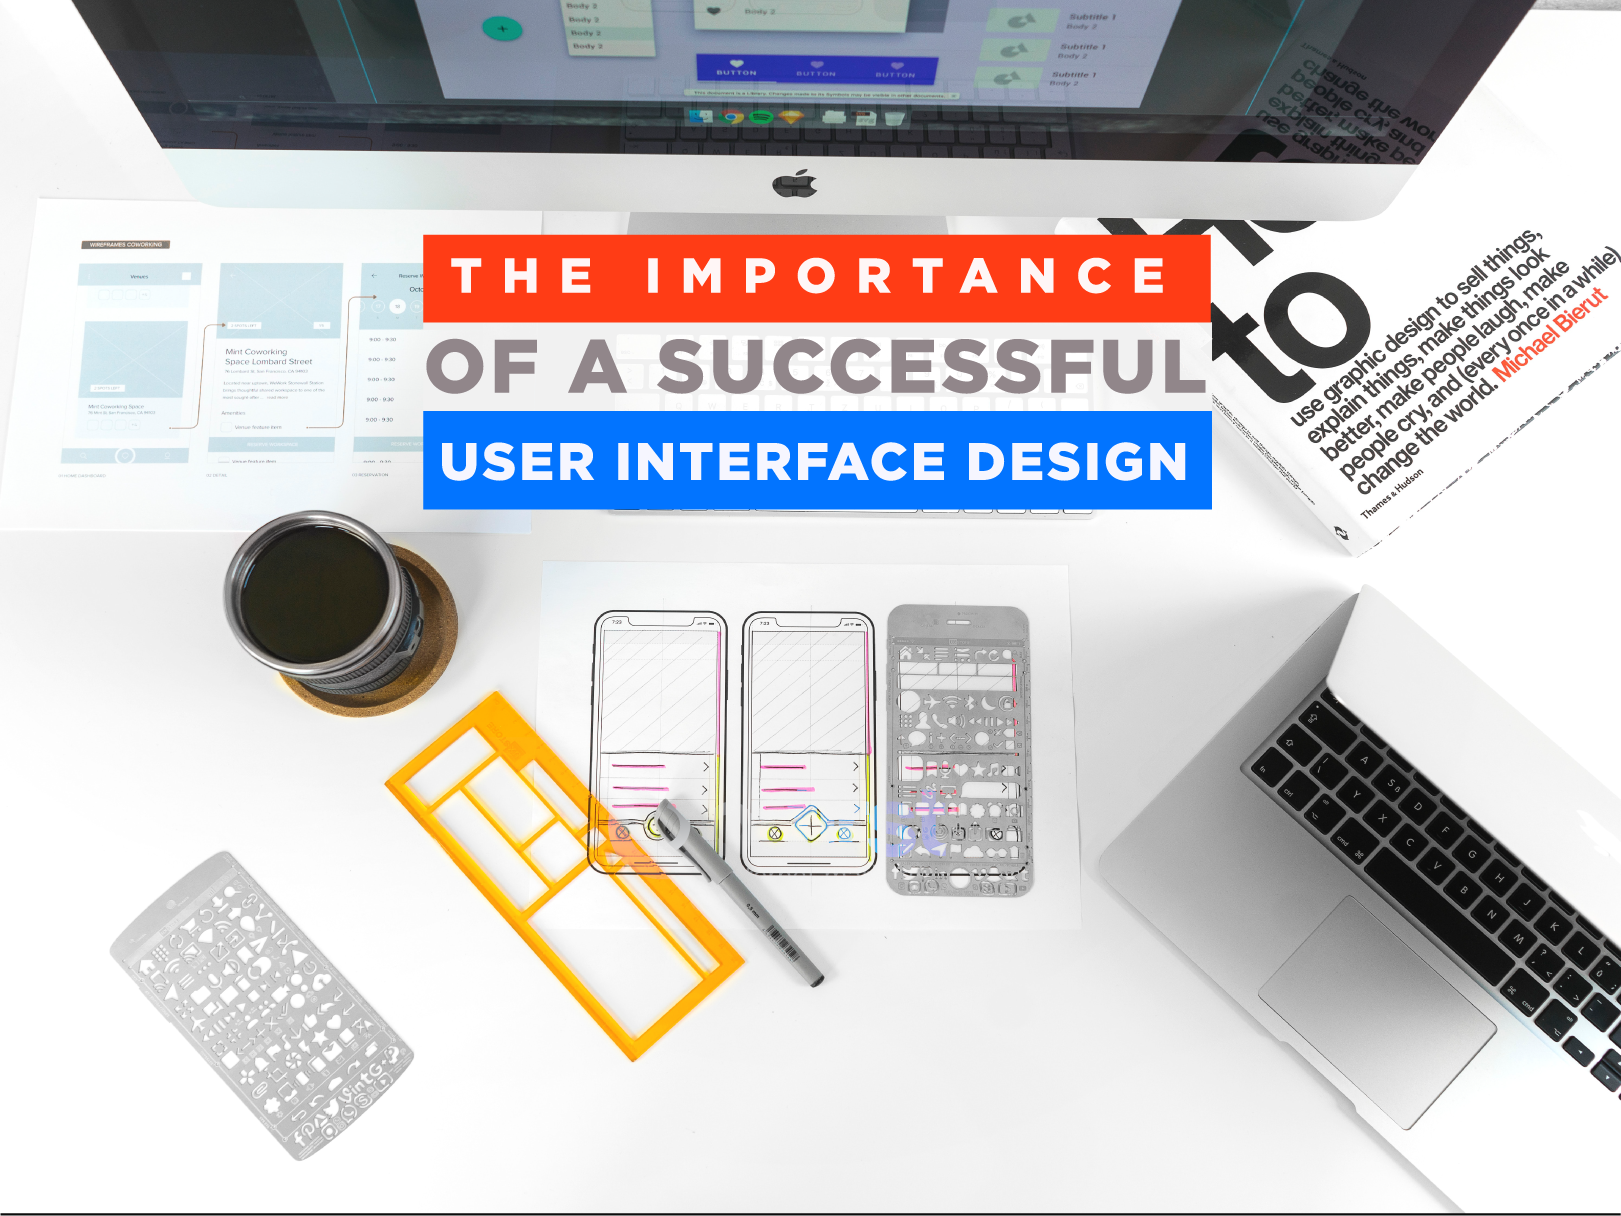 The Importance of a Successful User Interface Design